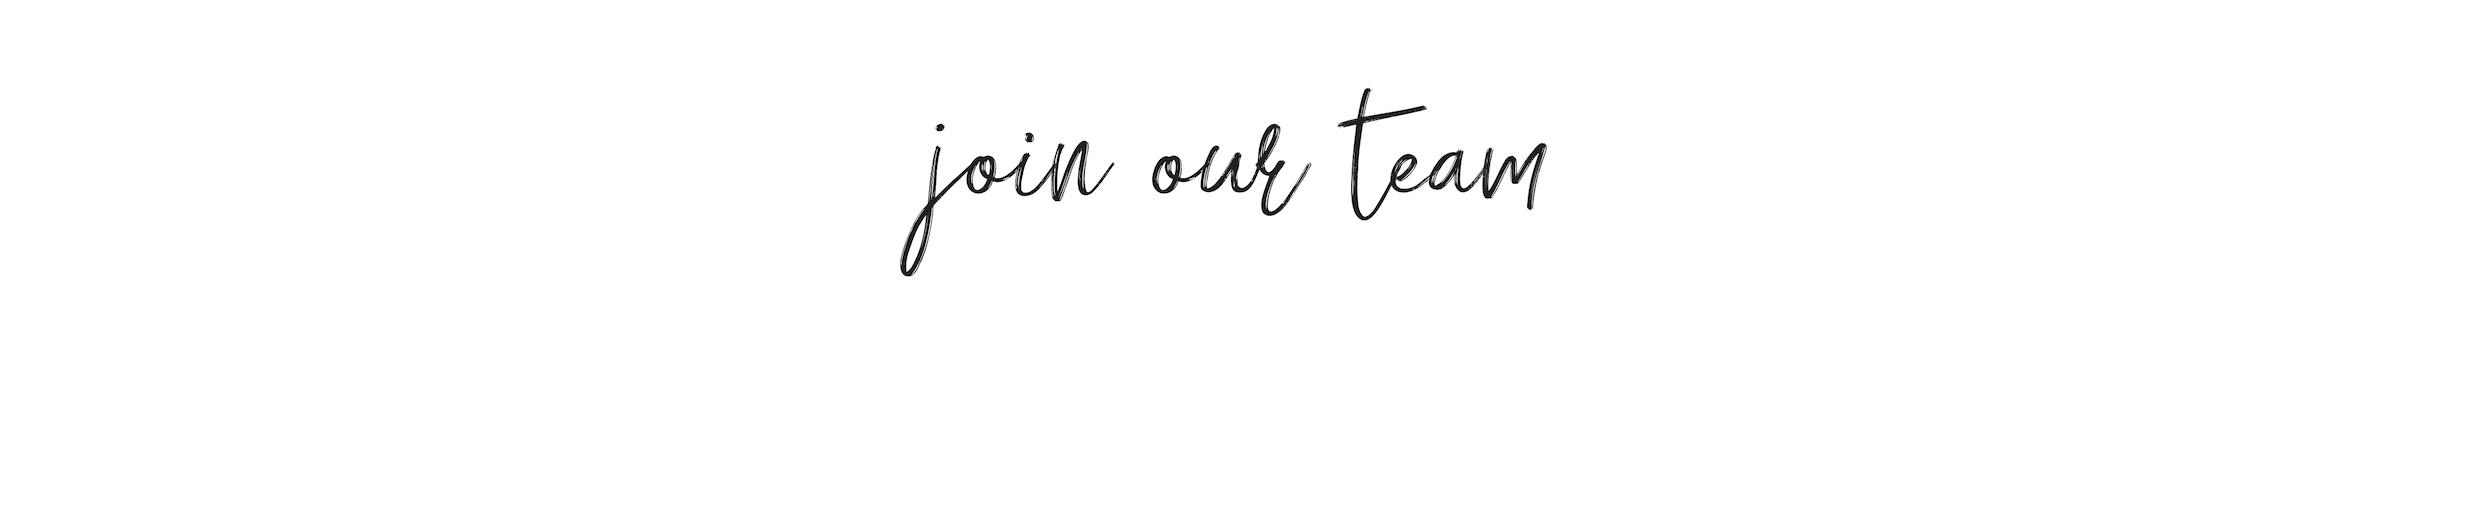 joinourteam